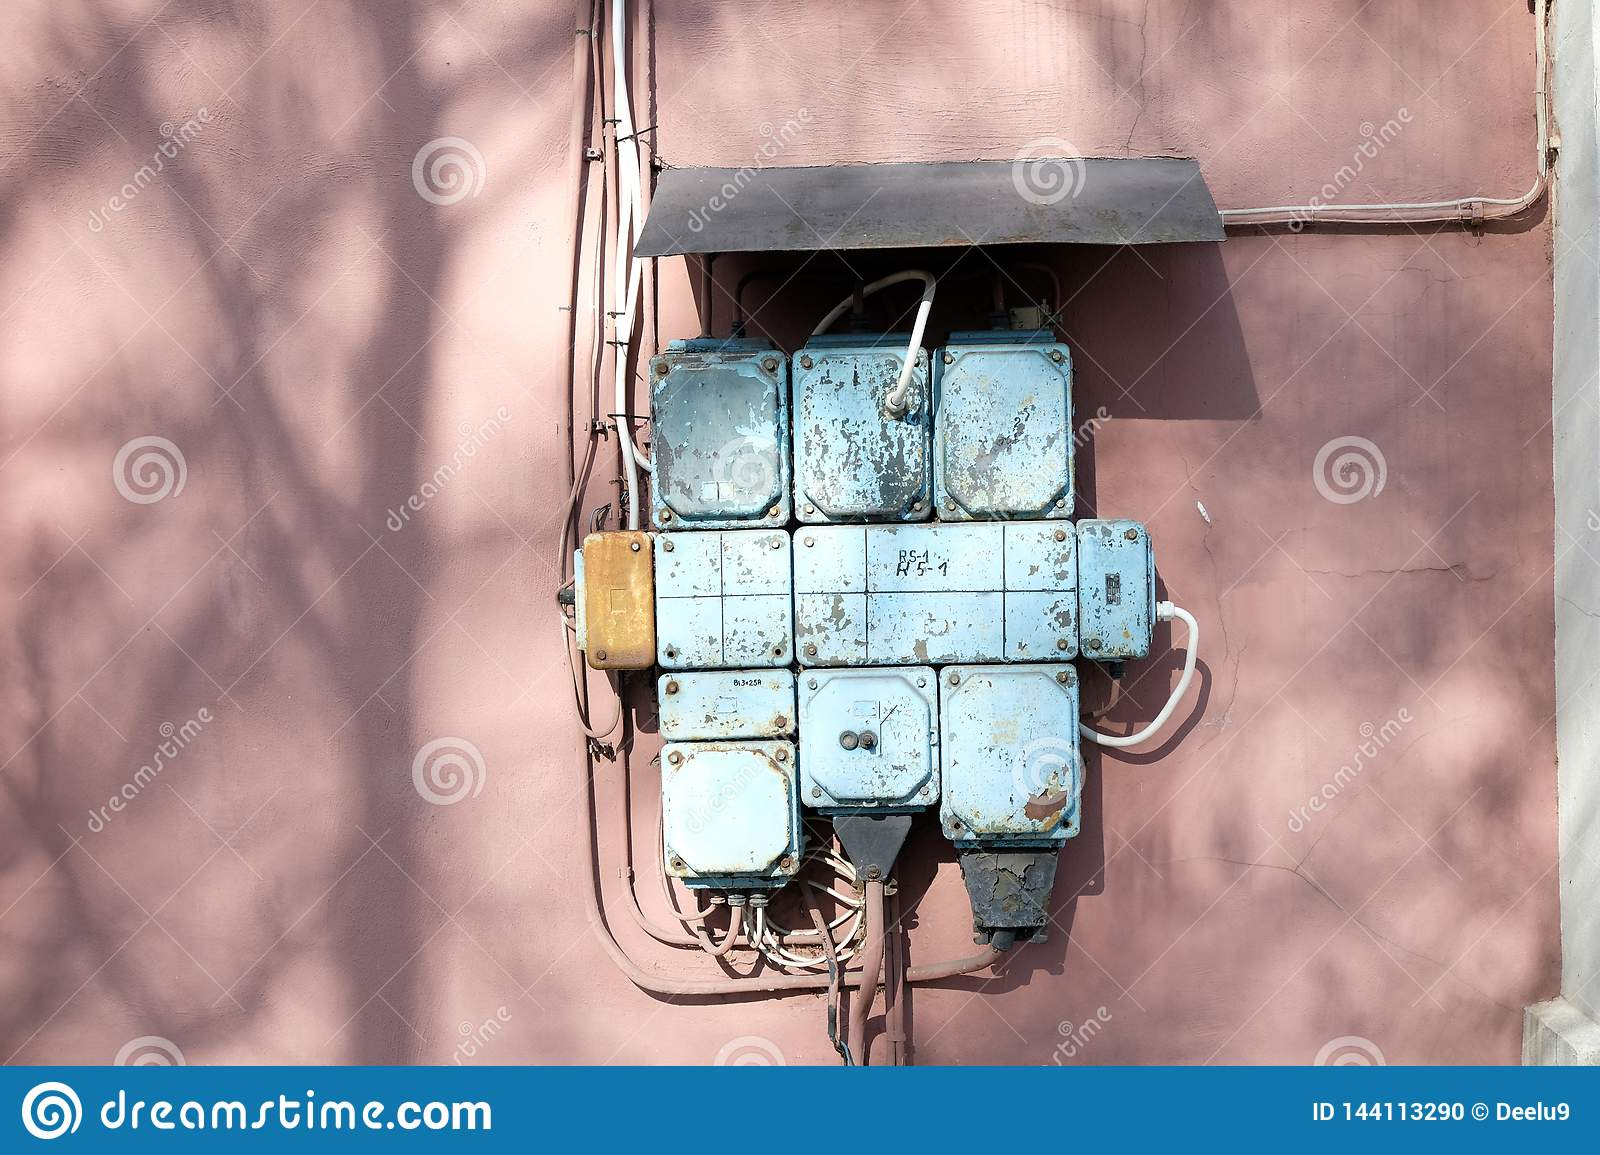 A vintage fuse box on a pink wall